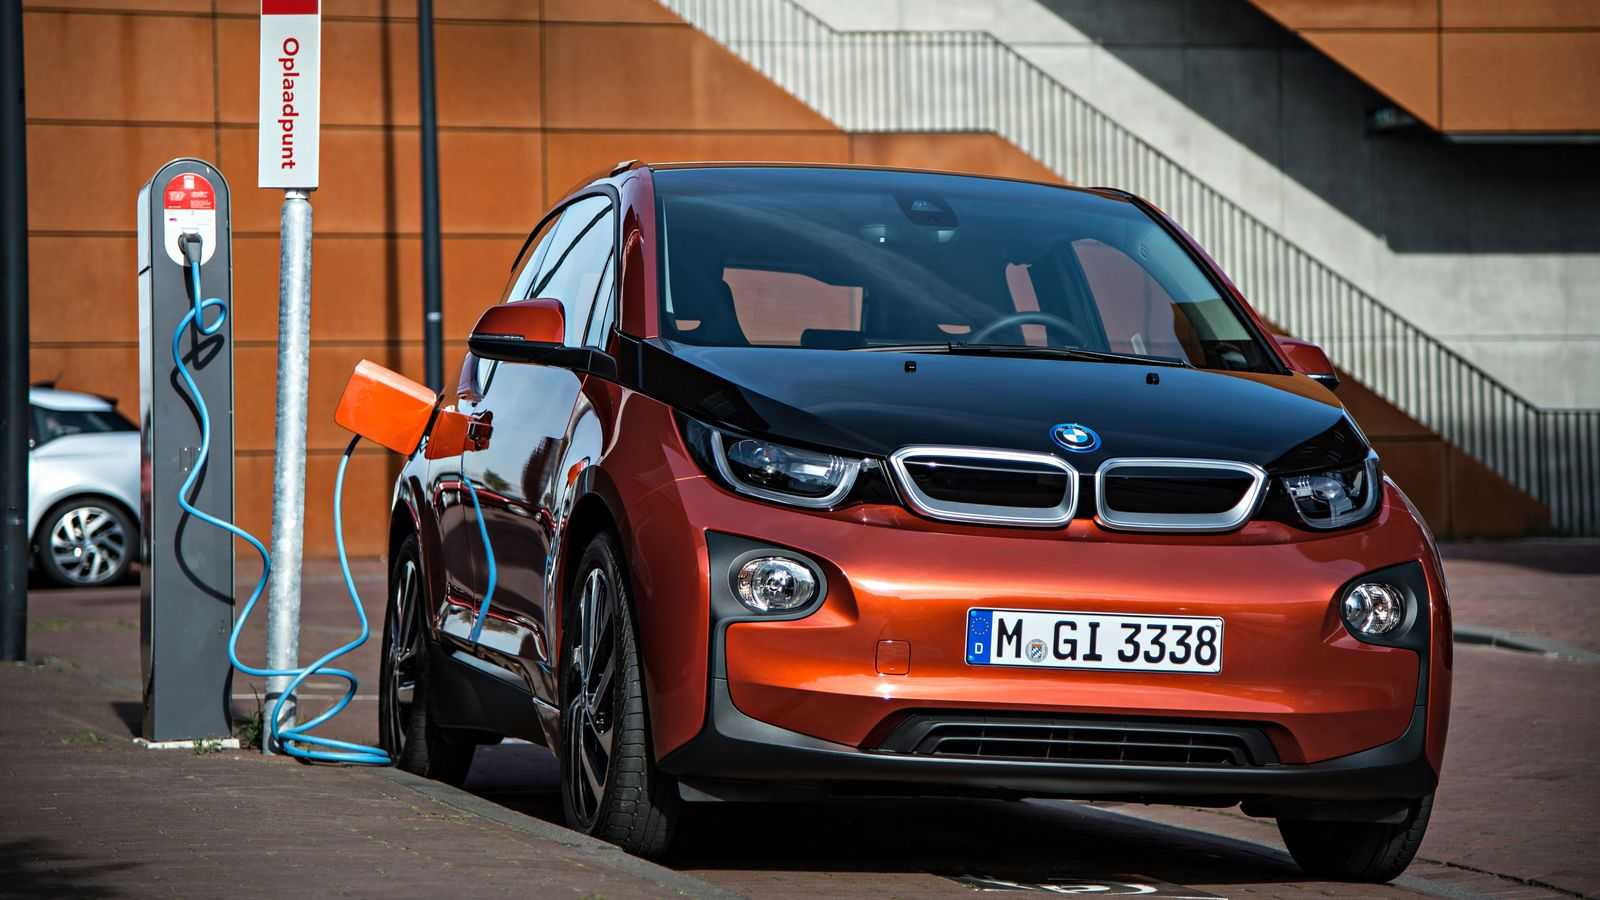 BMW i3 Owners Can Earn up to $1,000 to Charge Their Cars Later